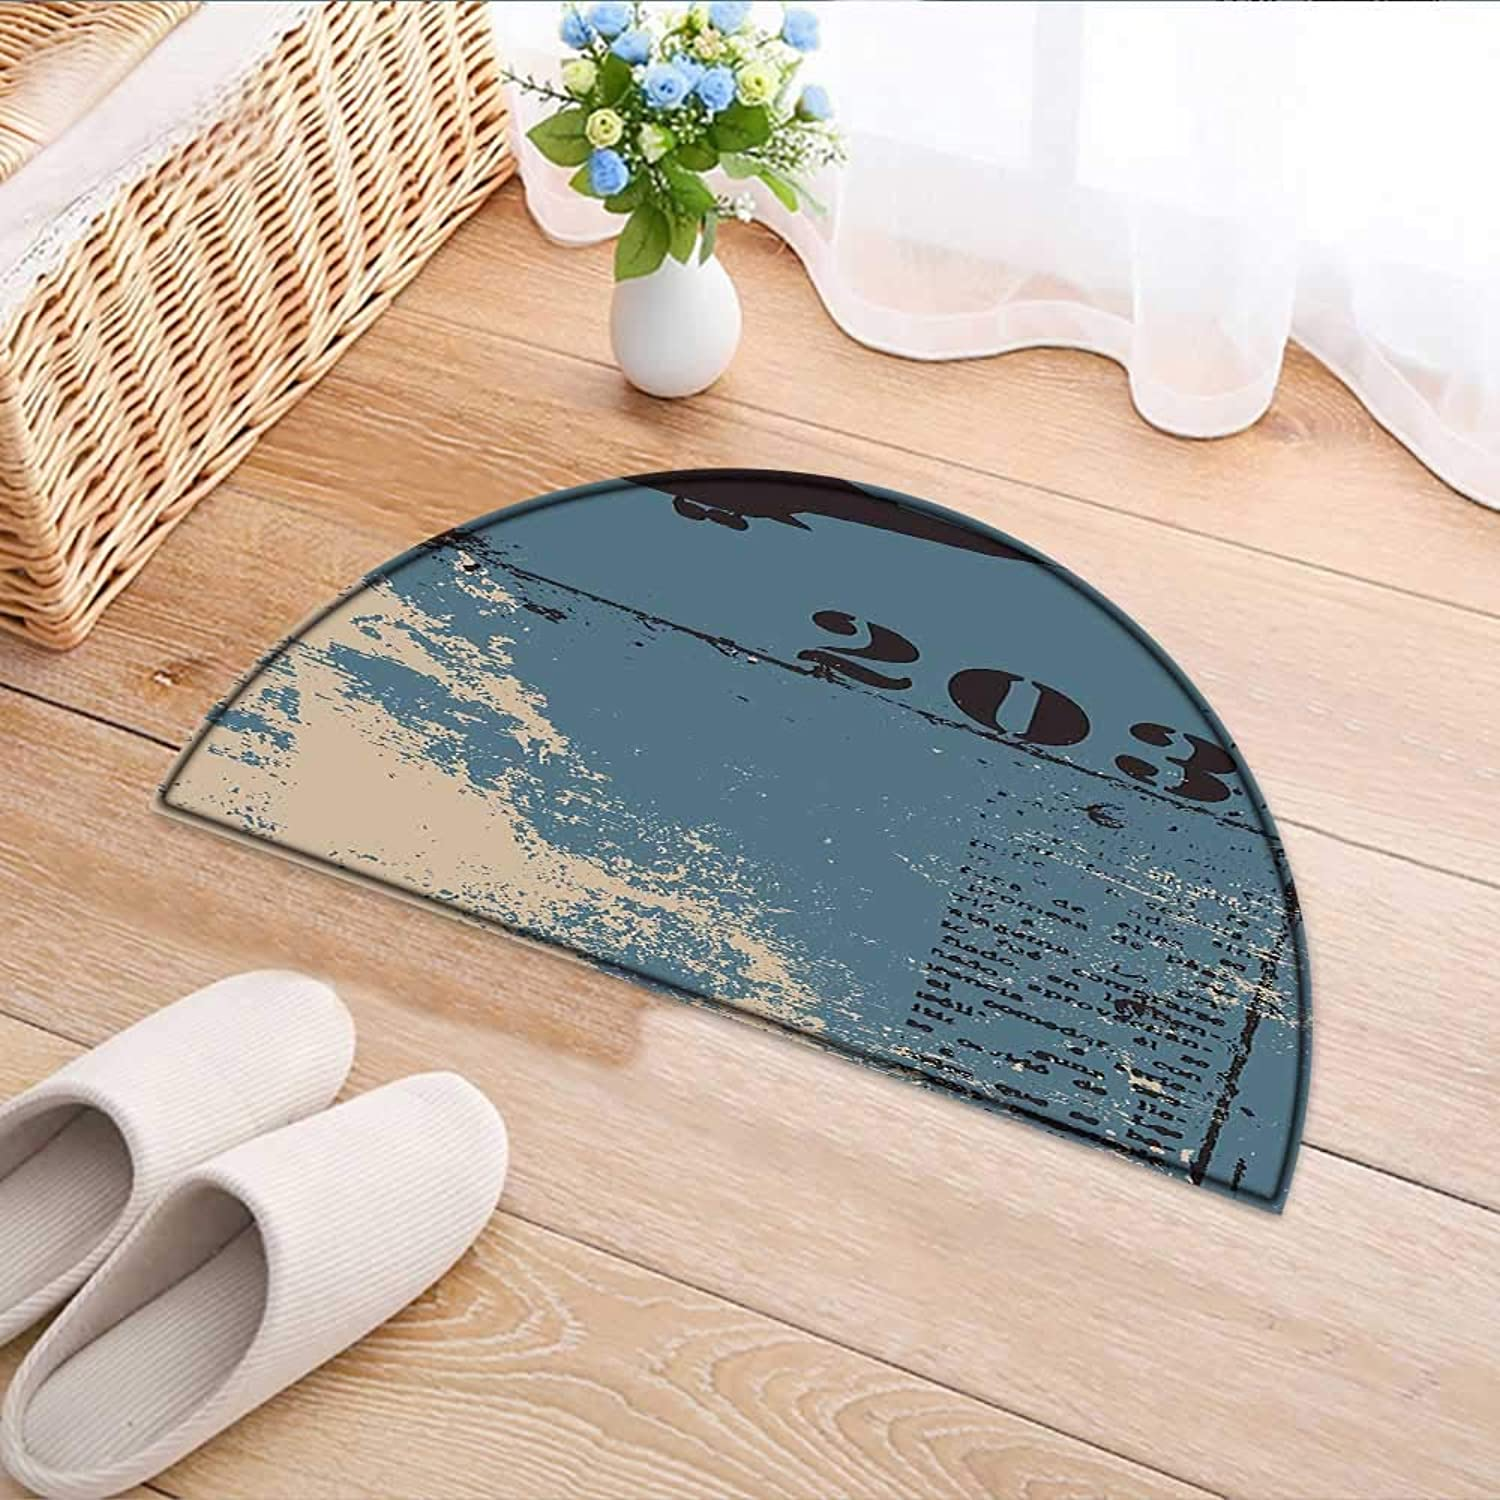 Entrance Hall Carpet Silhouette Flying Military Theme Lettering Typography Vintage Worn Slate bluee Black Silver Non Slip Rug W39 x H28 INCH